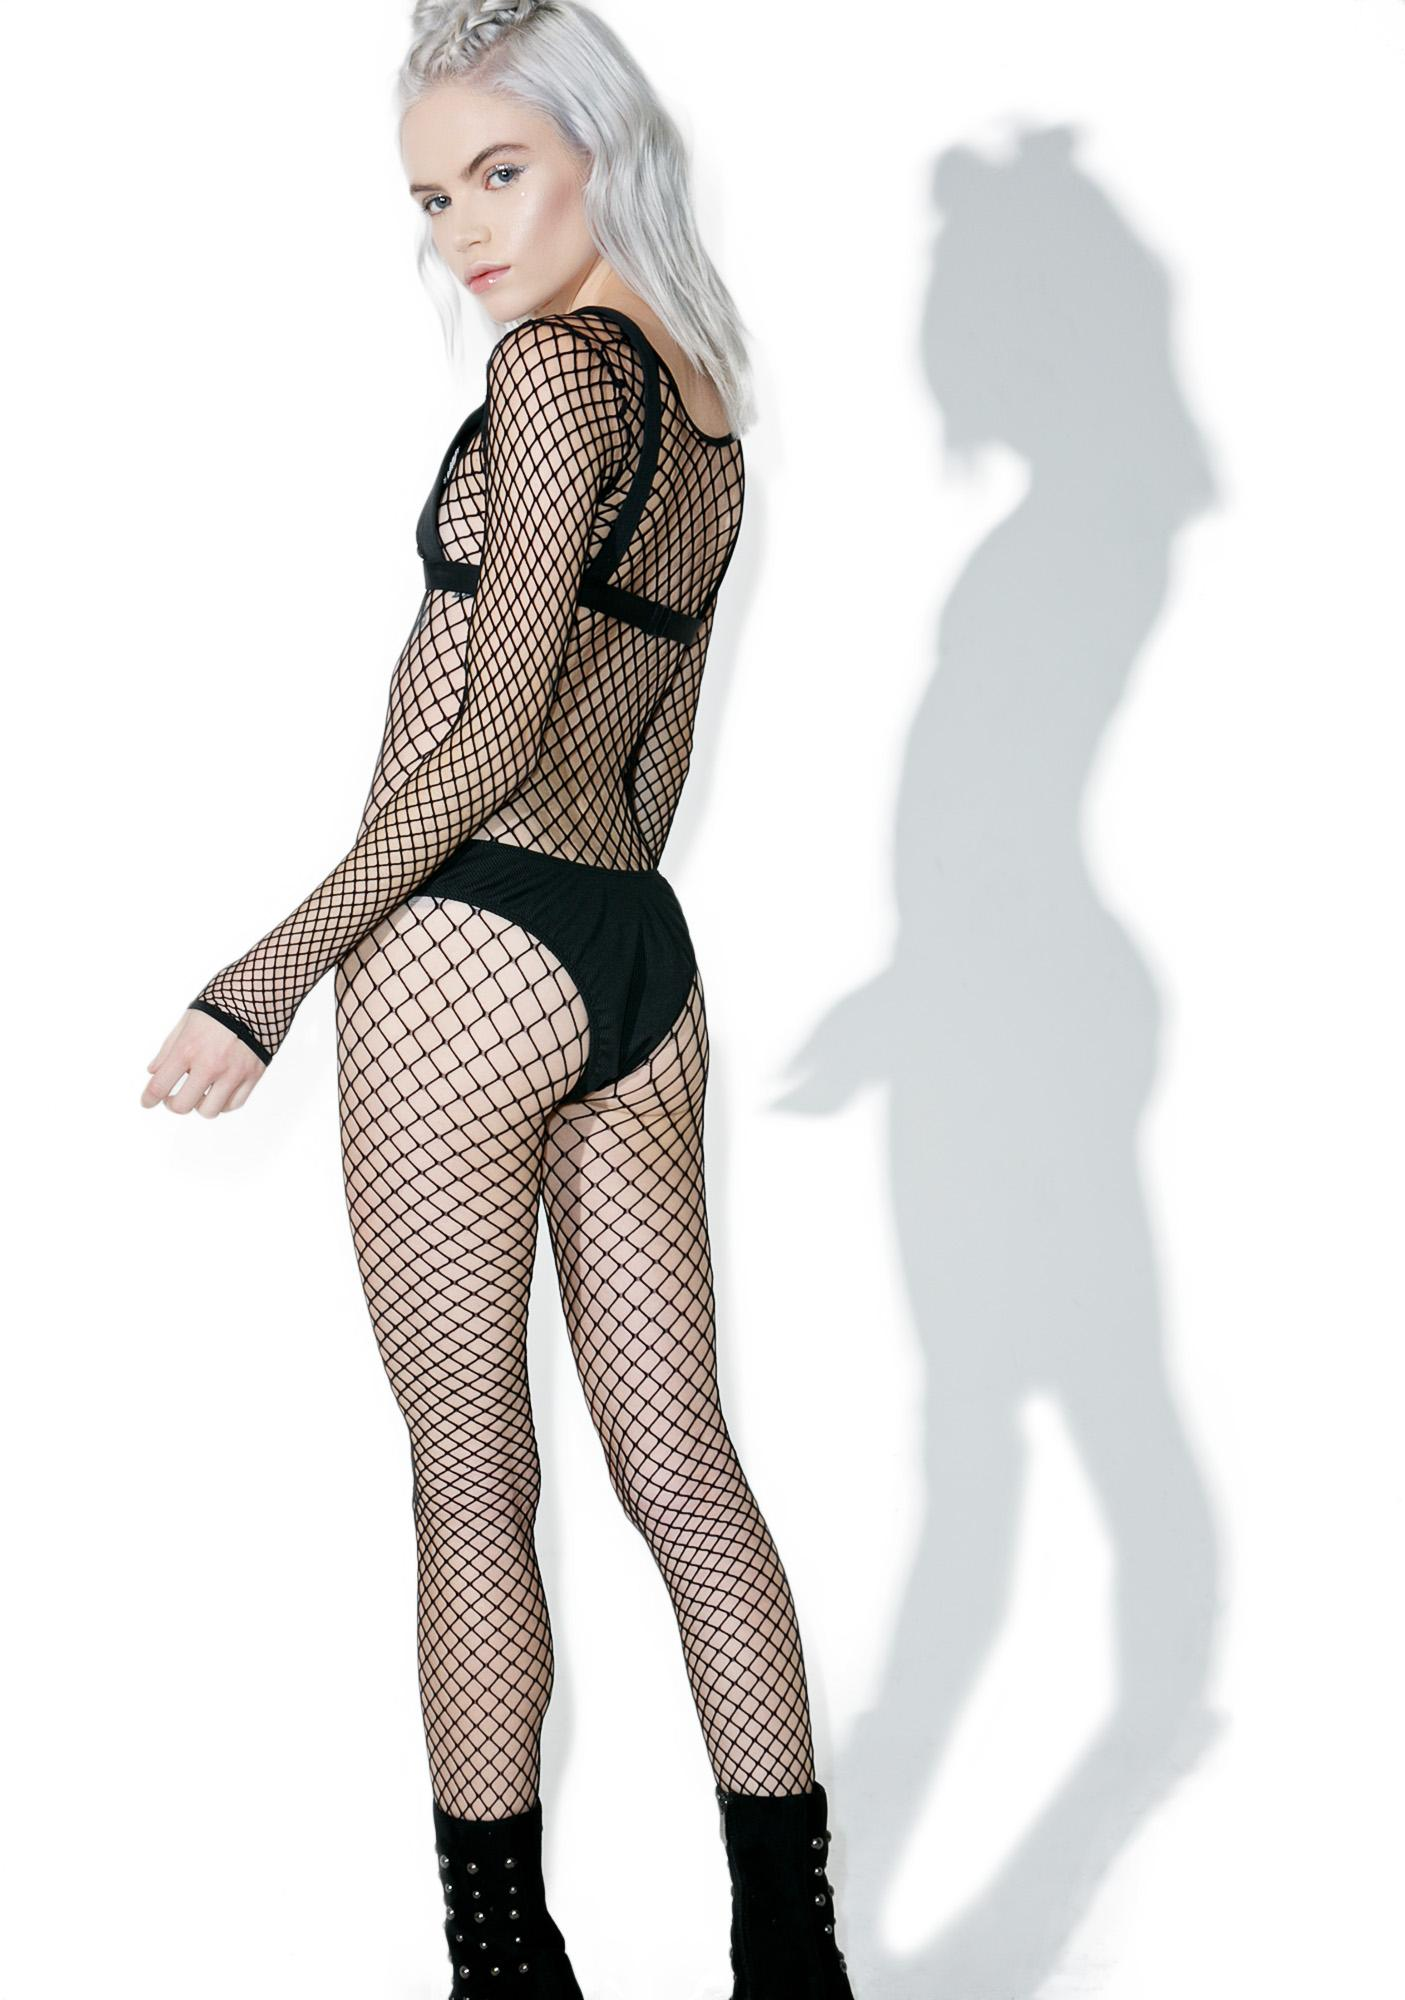 Lynda leigh hot pics fetish fishnet bodystocking latex boots